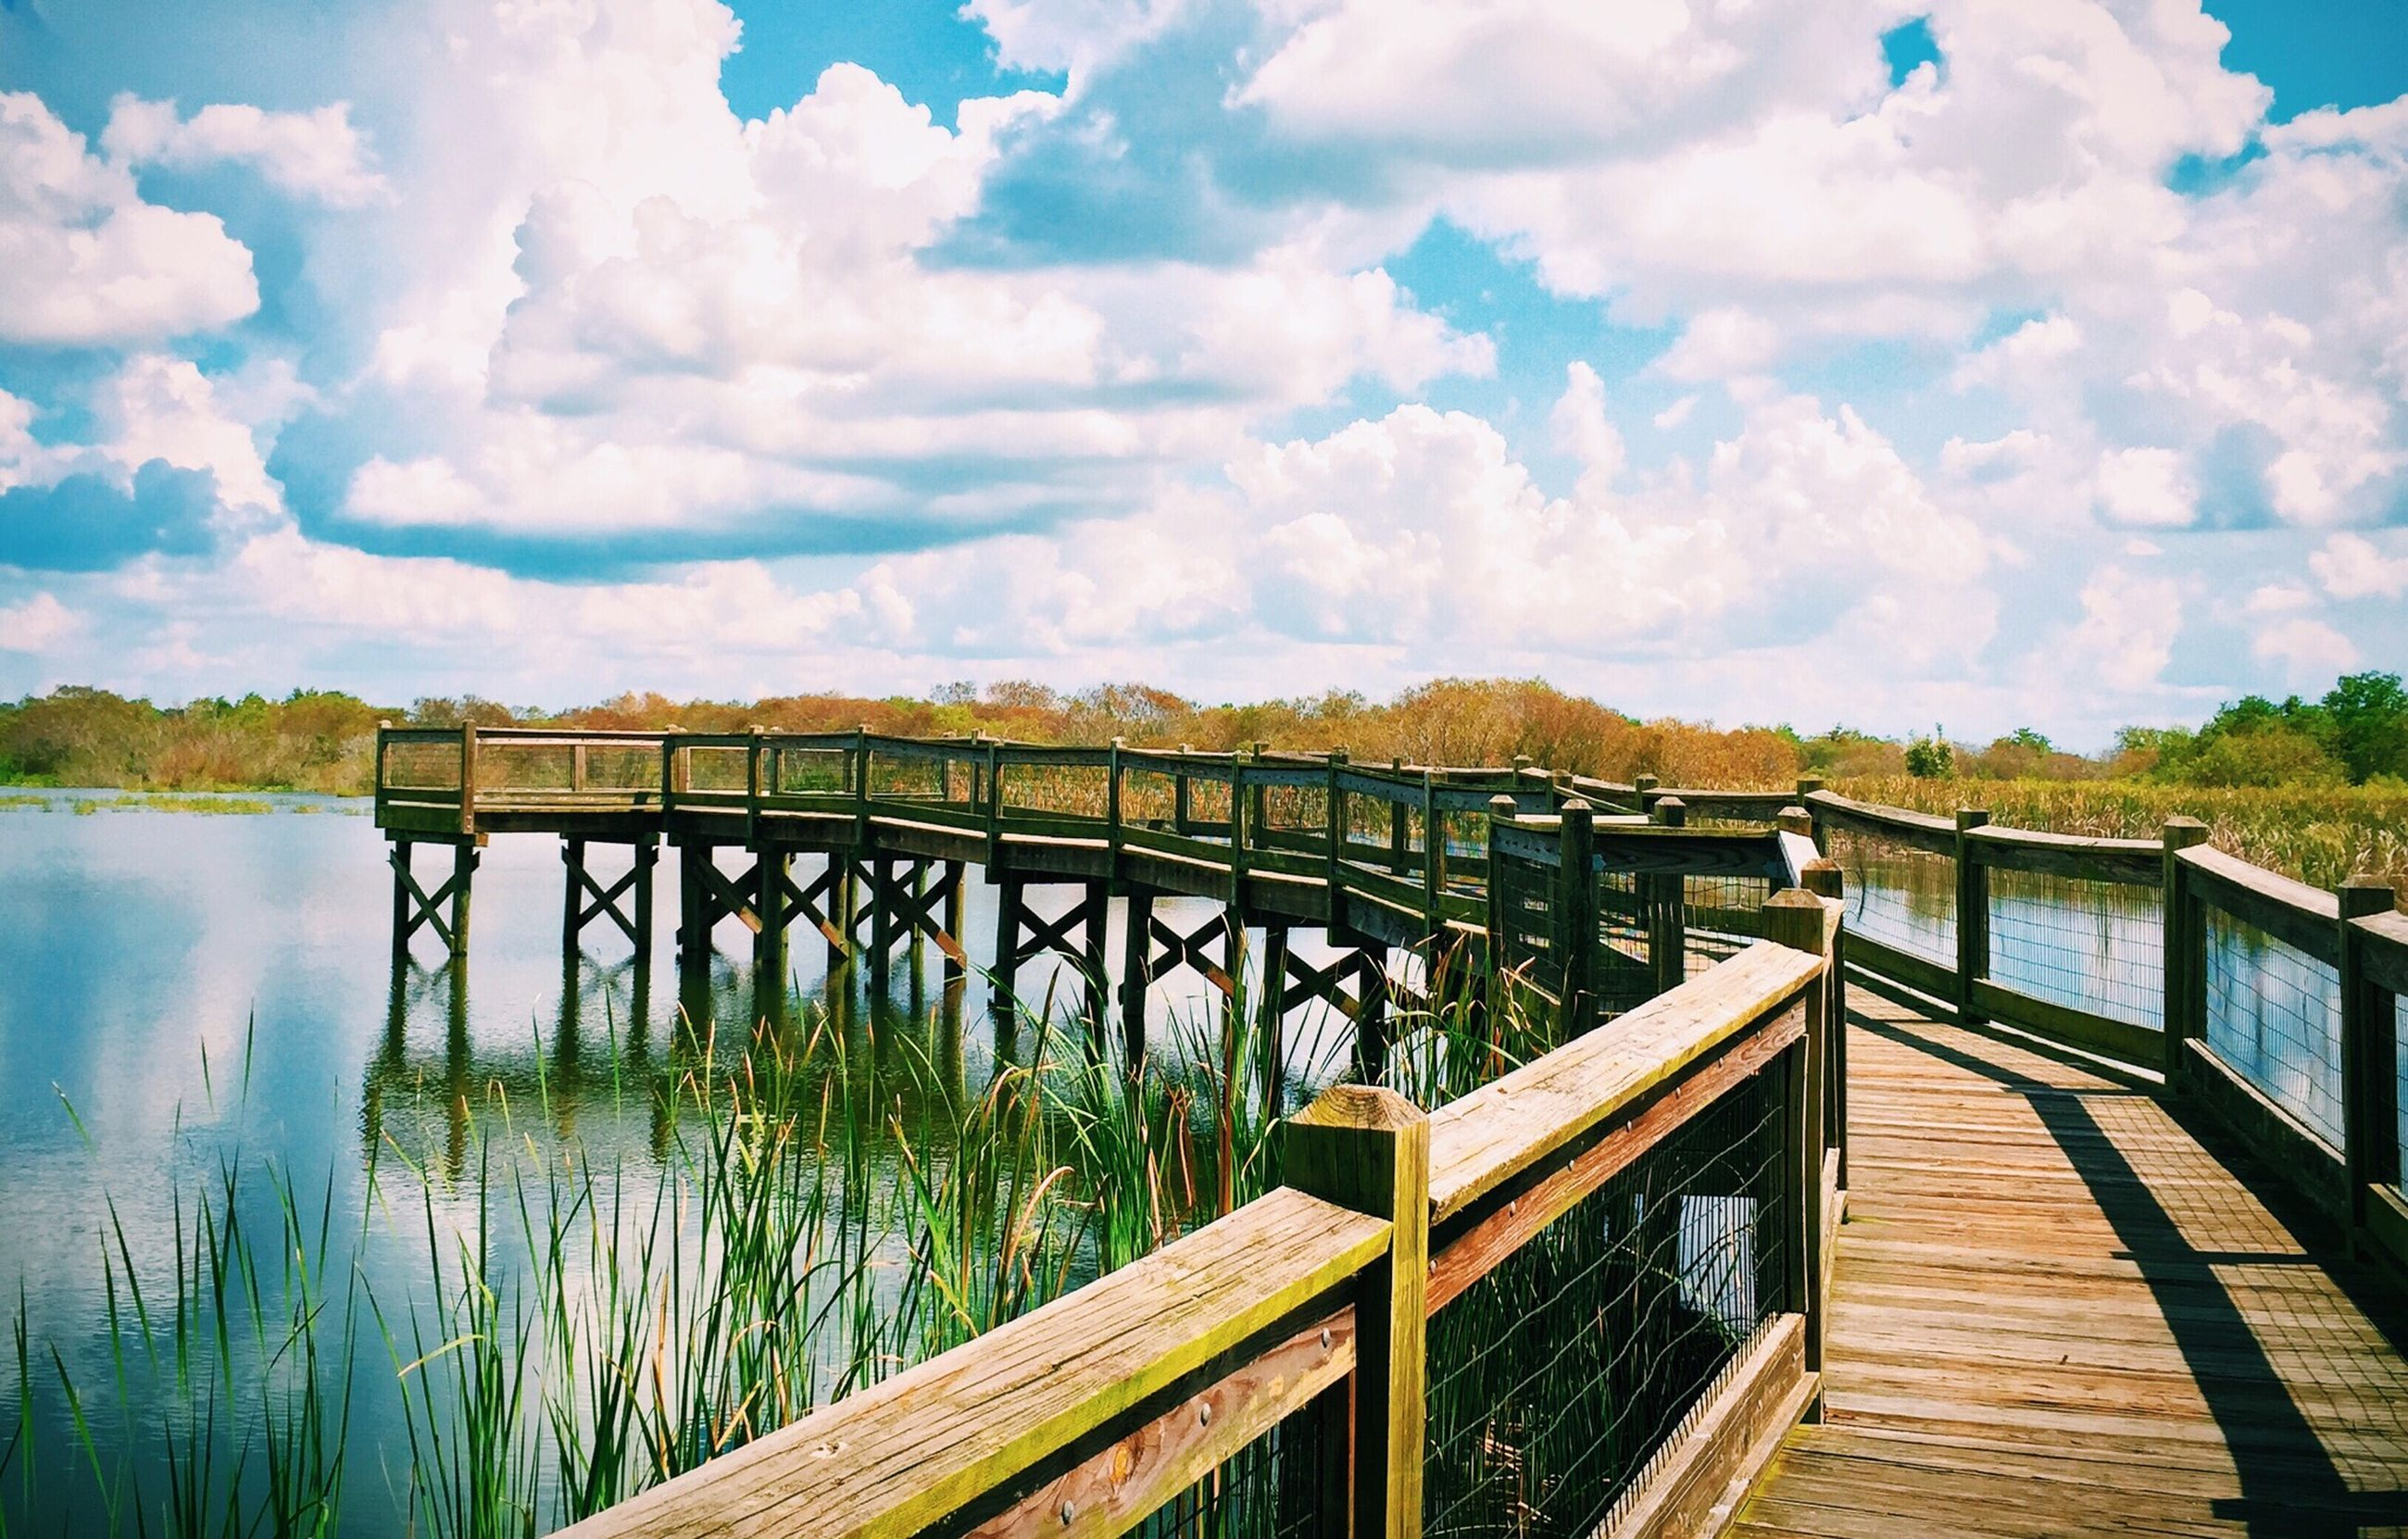 railing, sky, water, cloud - sky, tranquility, tranquil scene, pier, wood - material, lake, scenics, boardwalk, beauty in nature, nature, cloud, built structure, cloudy, footbridge, wood, idyllic, tree